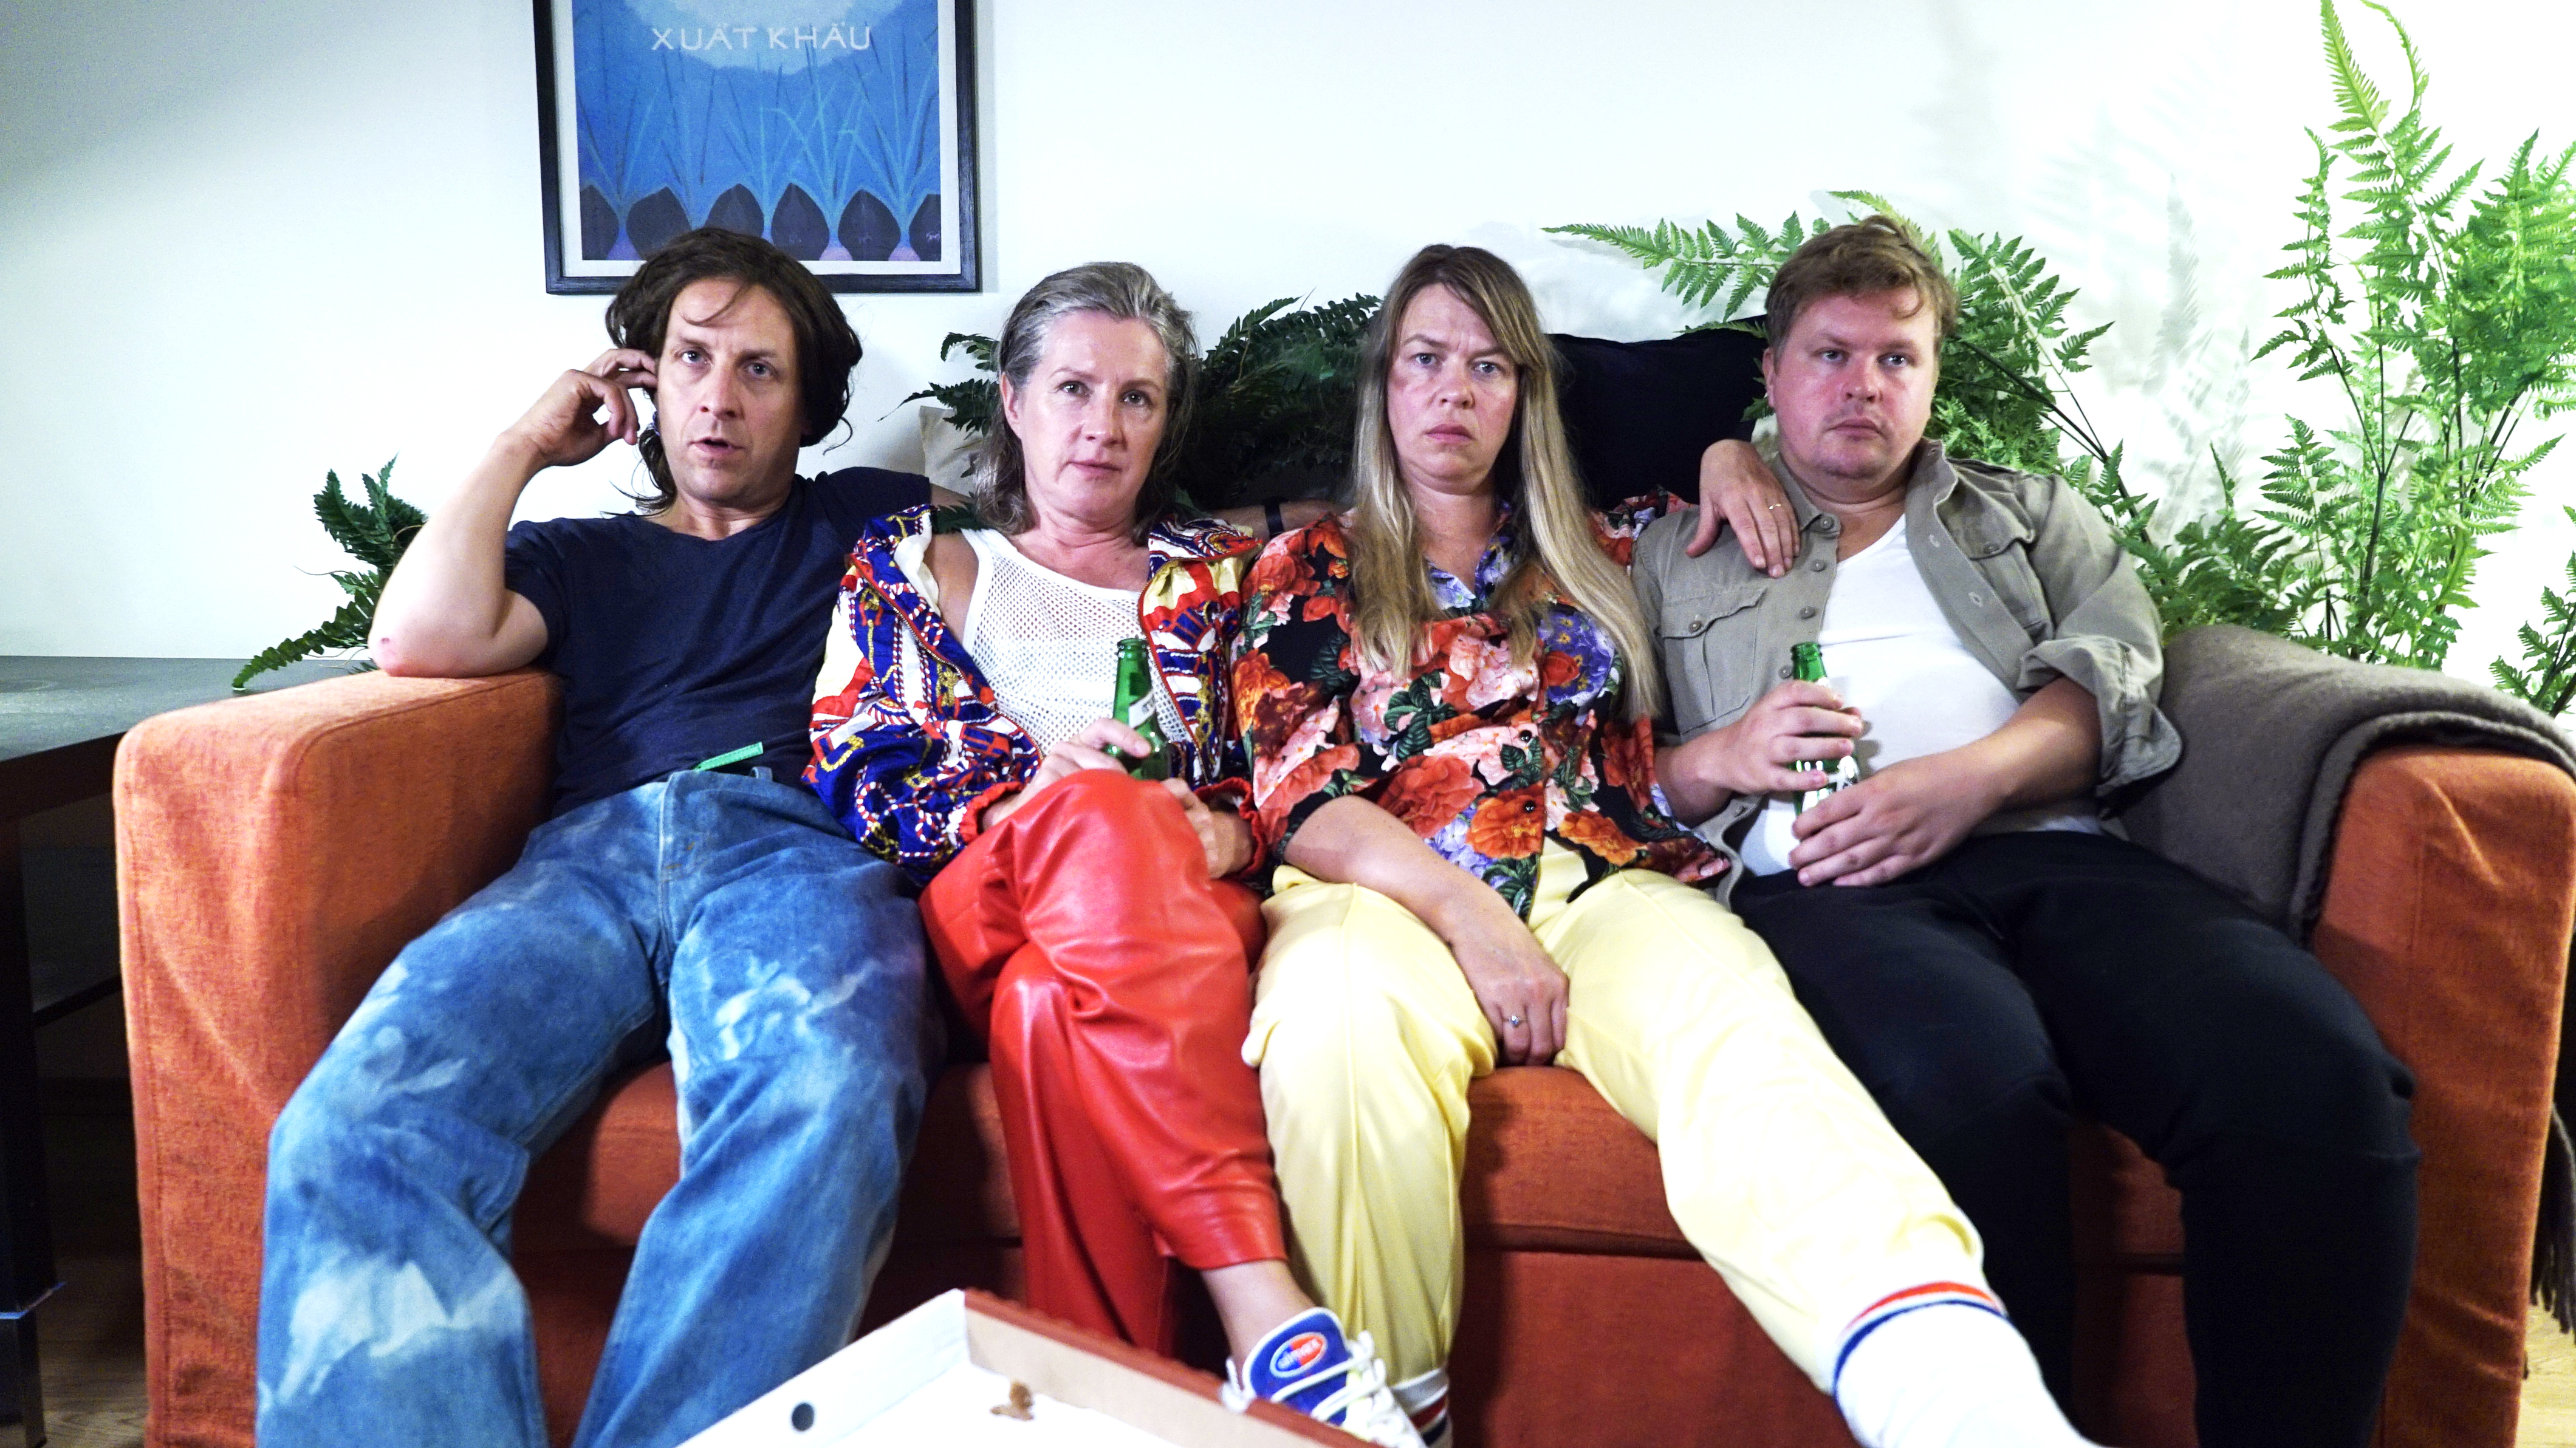 From the left: Ole Johan Skjelbred, Andrine Sæther, Tone Mostraum and Olav Waastad in Working title: Absent community